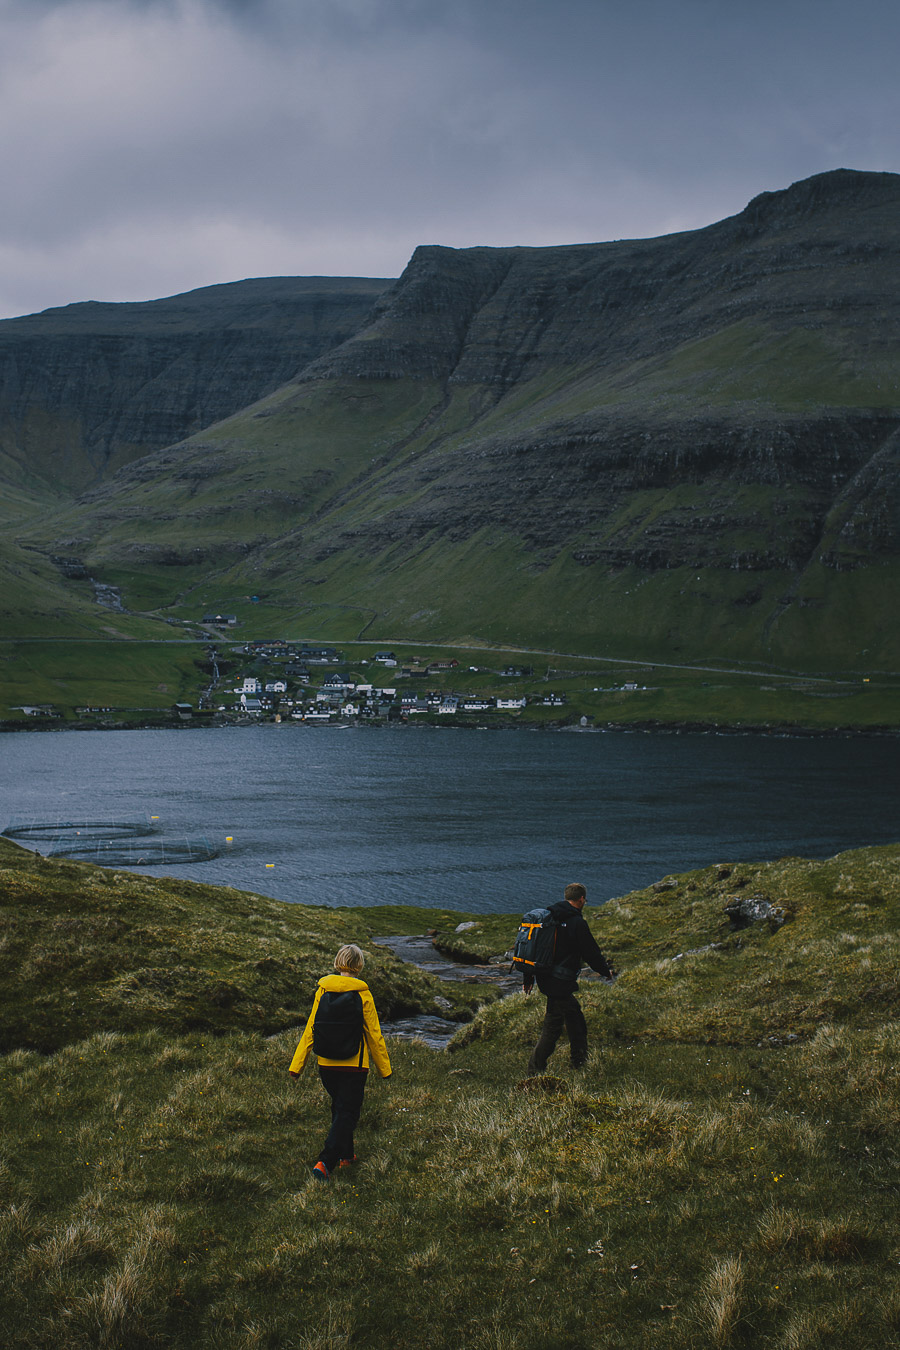 A woman and man hiking in the mountains of Faroe Islands